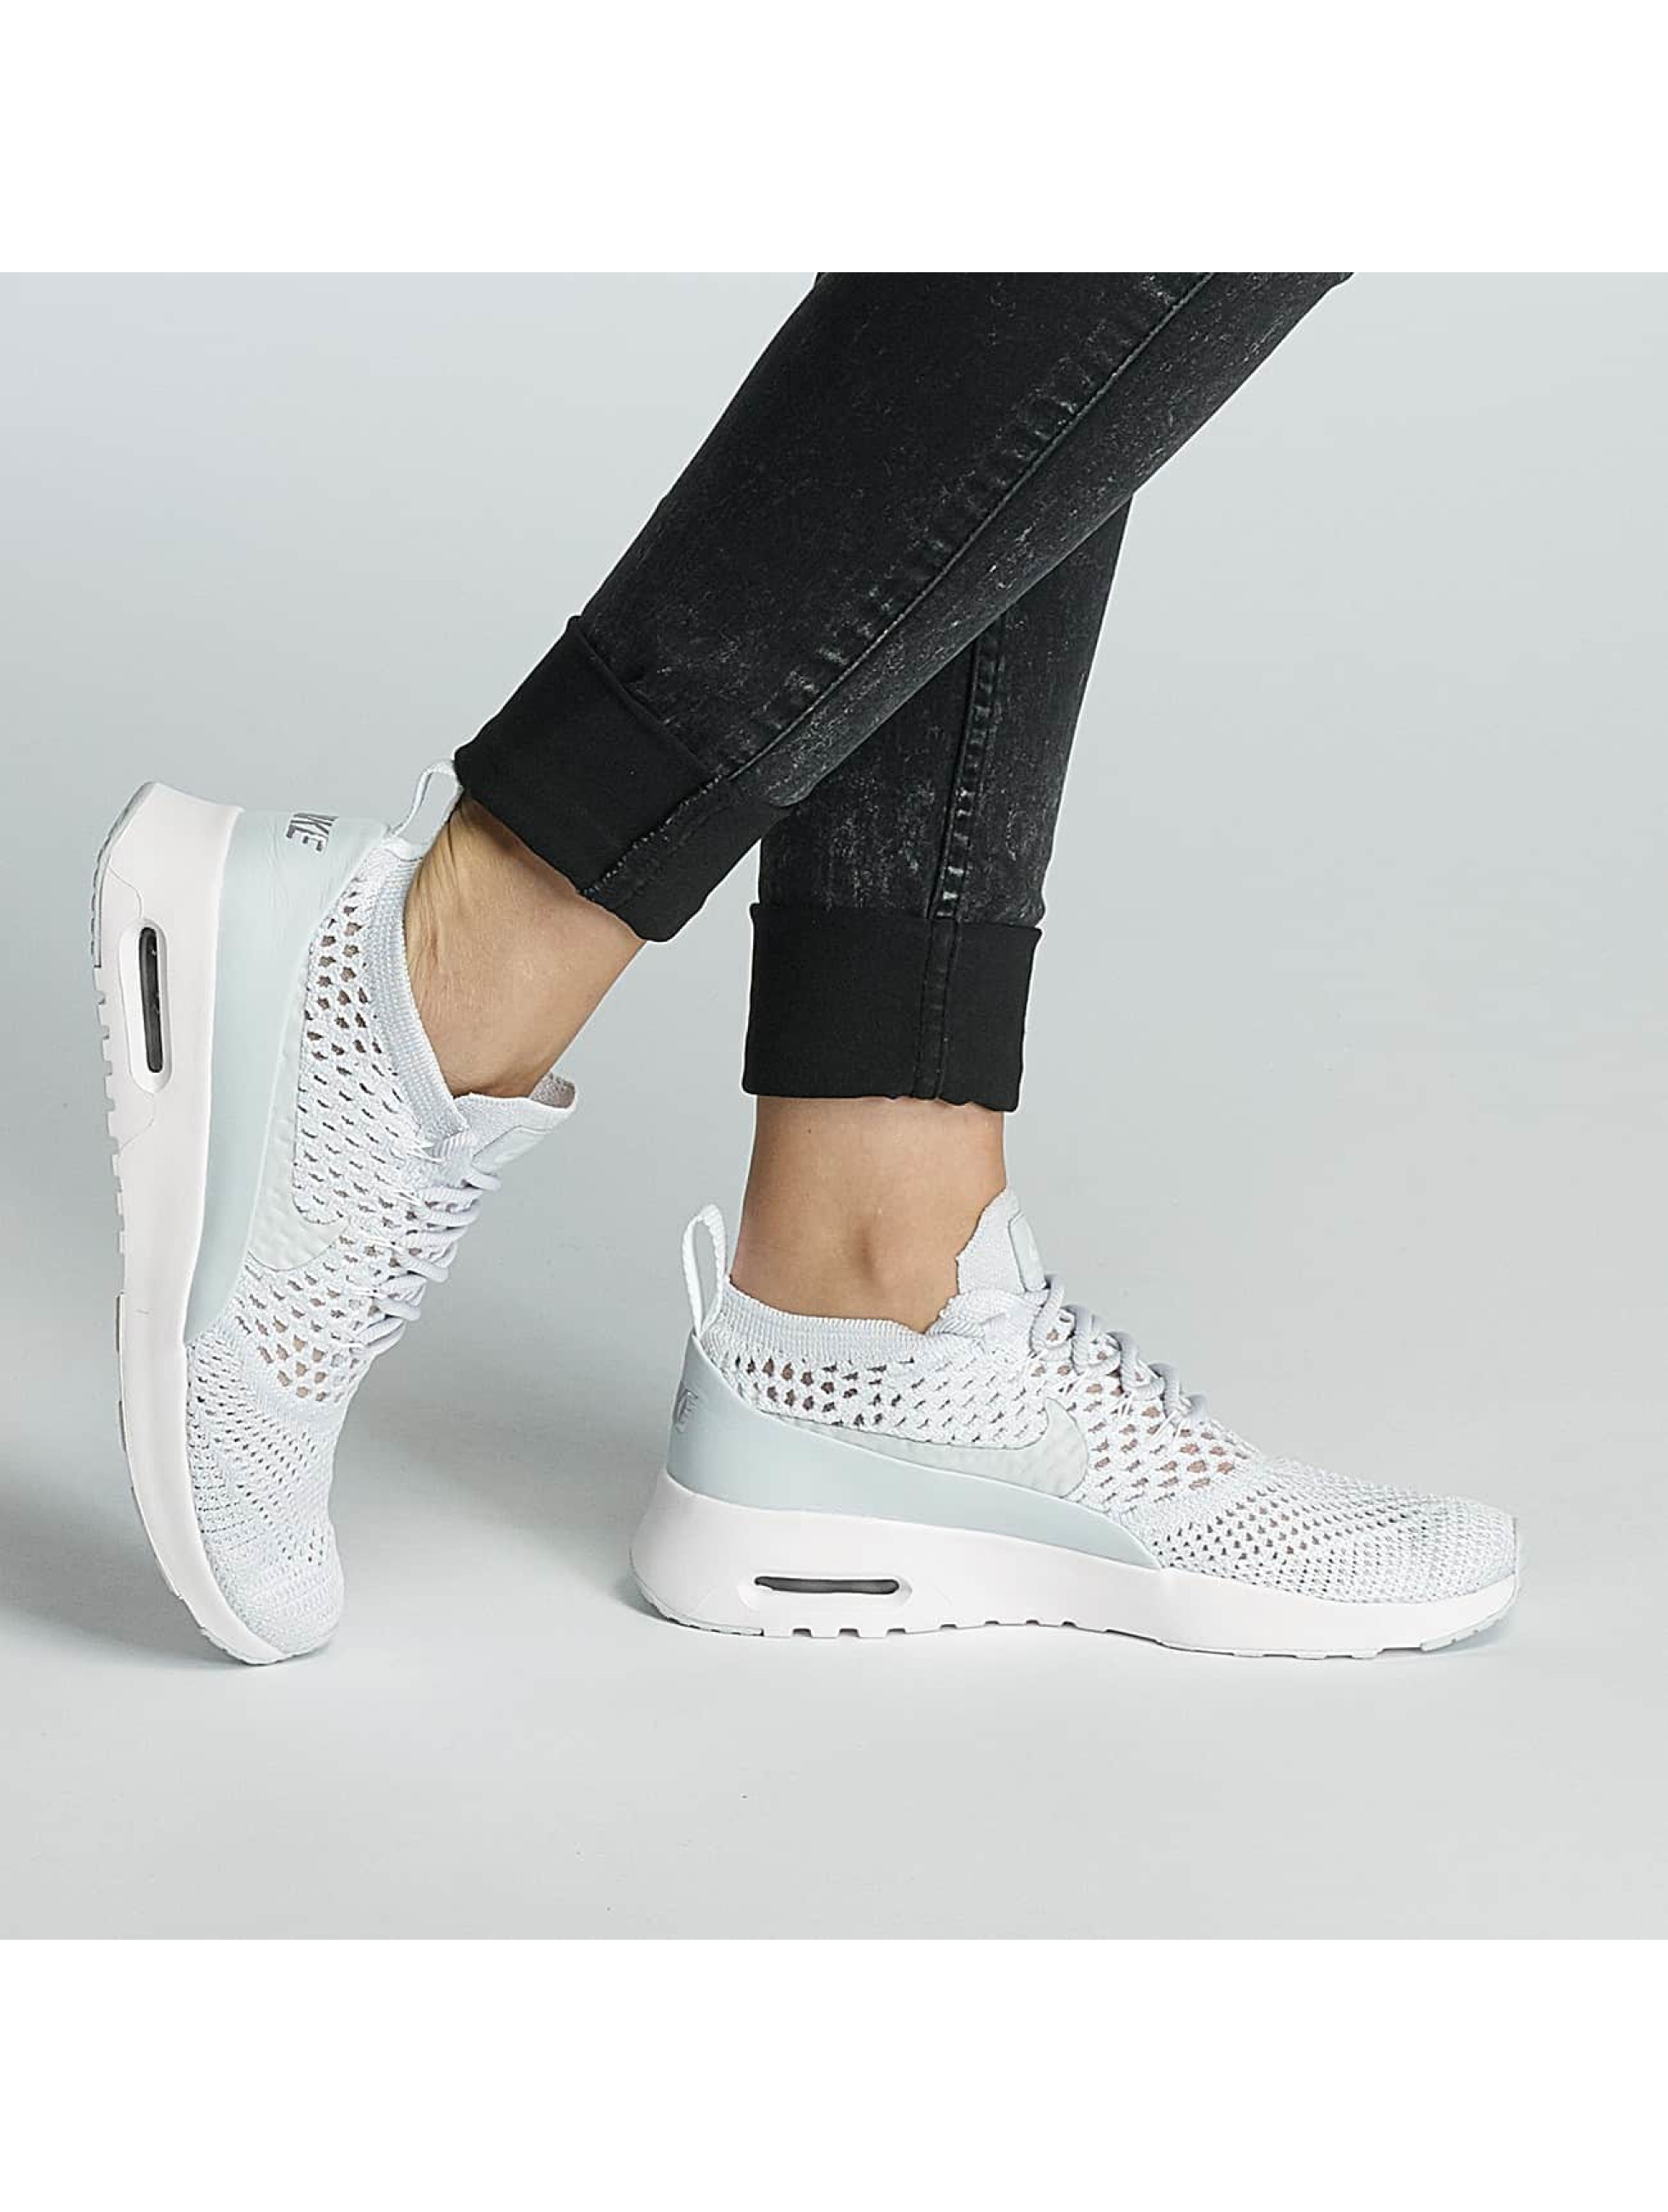 Nike Sneakers Air Max Thea Ultra Flyknit šedá